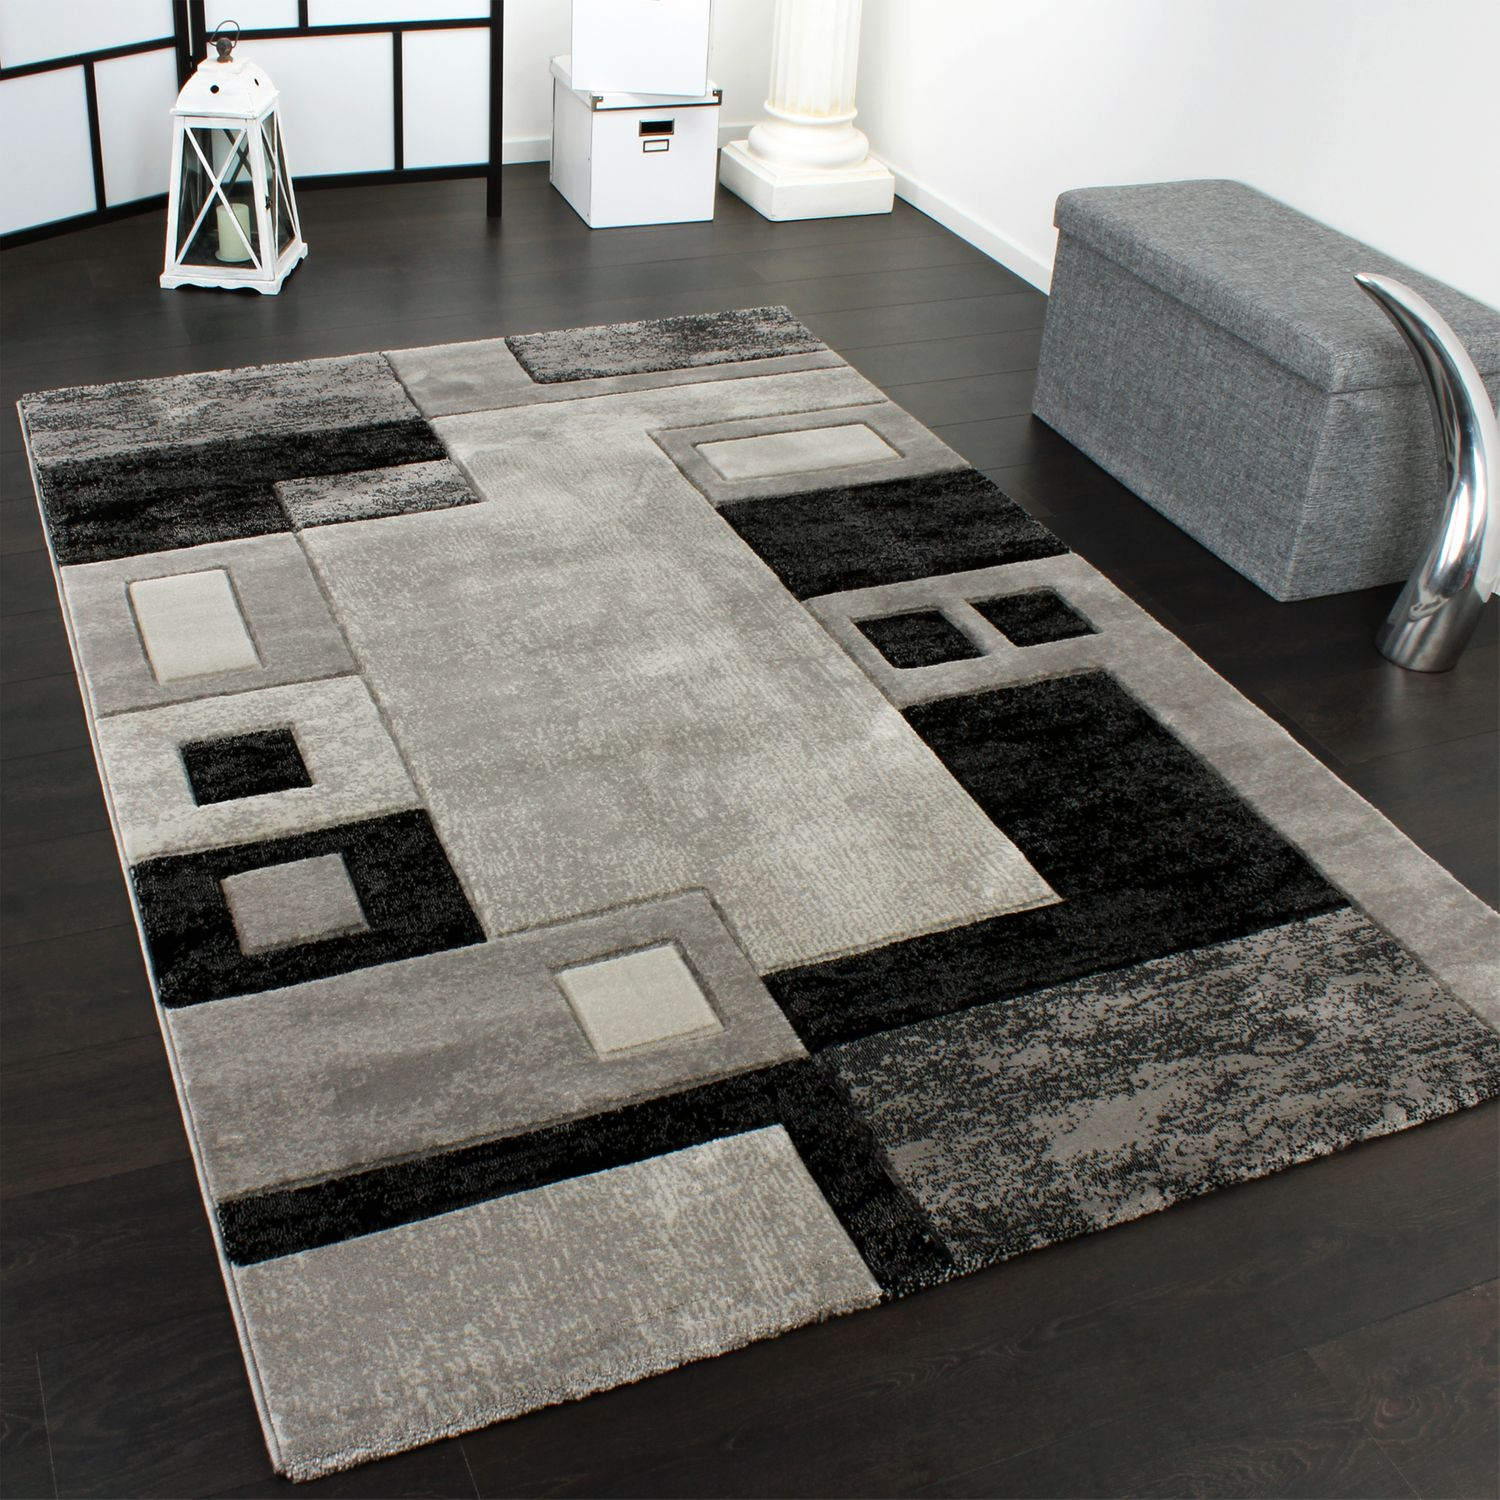 Luxury Designer Rug - Contour Cut - Geometric Checked - Mottled Grey Black Sale